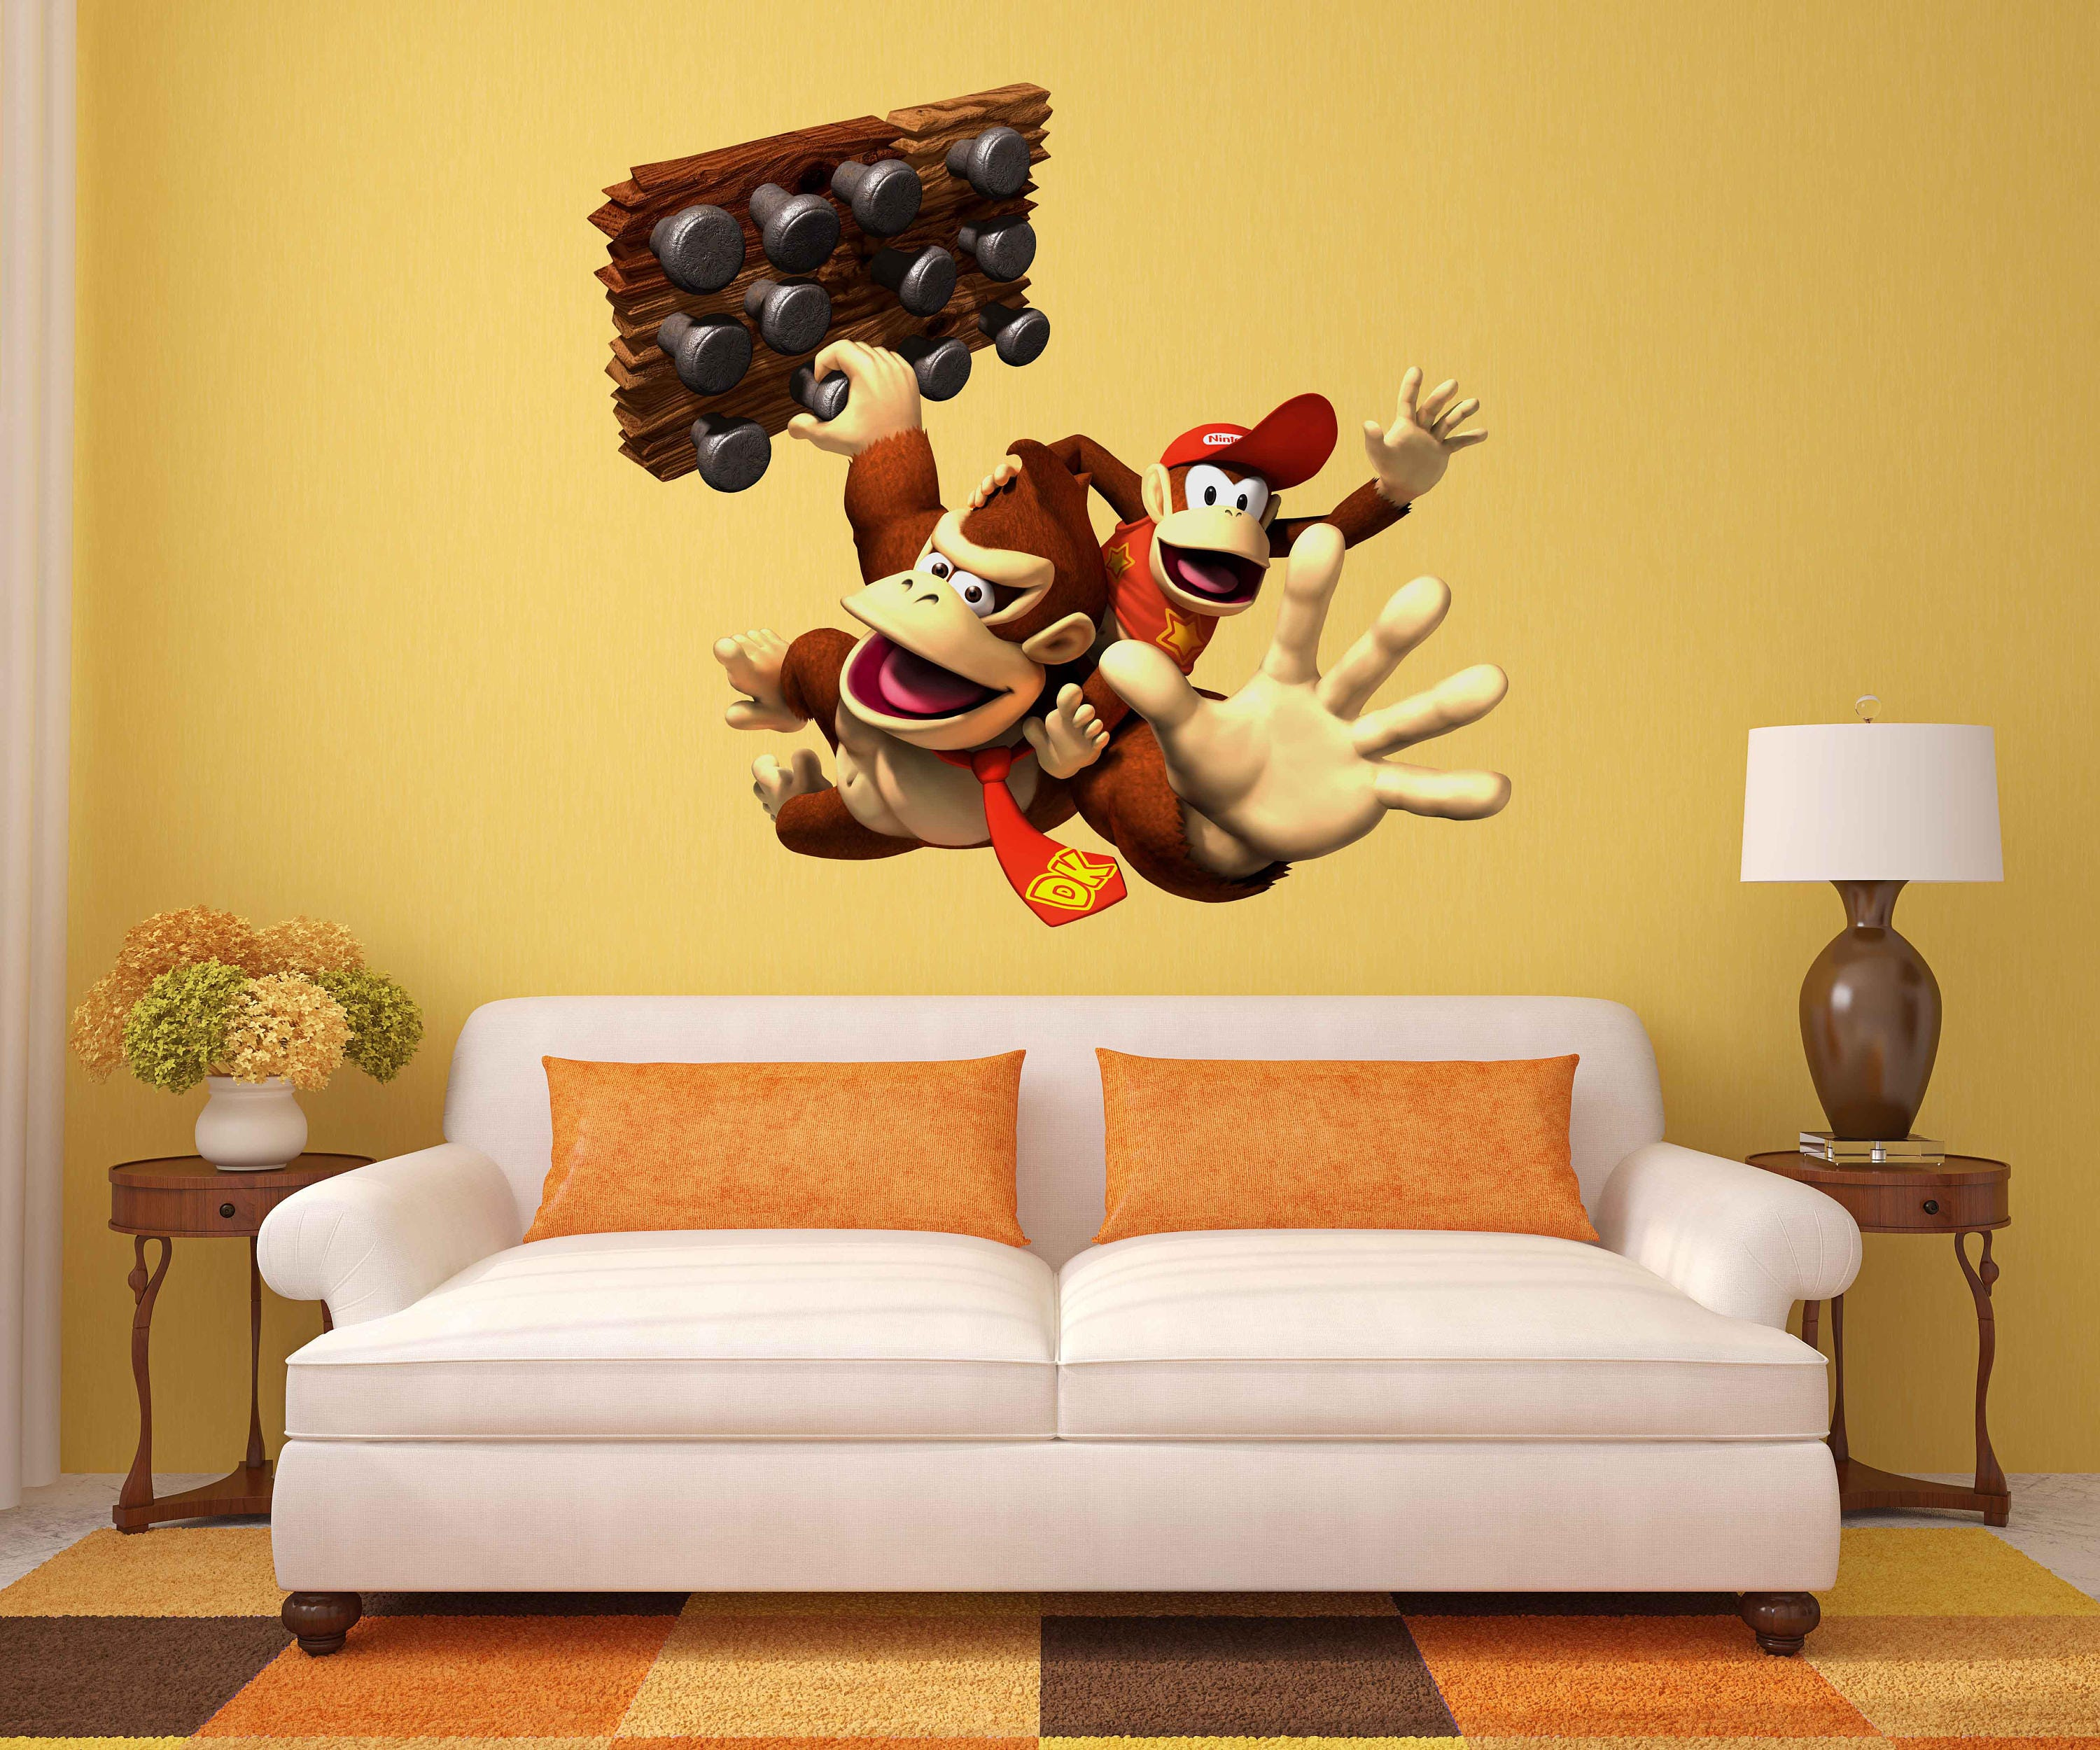 Donkey Kong Decals Diddy Kong Game Room Vintage Nintendo   Etsy